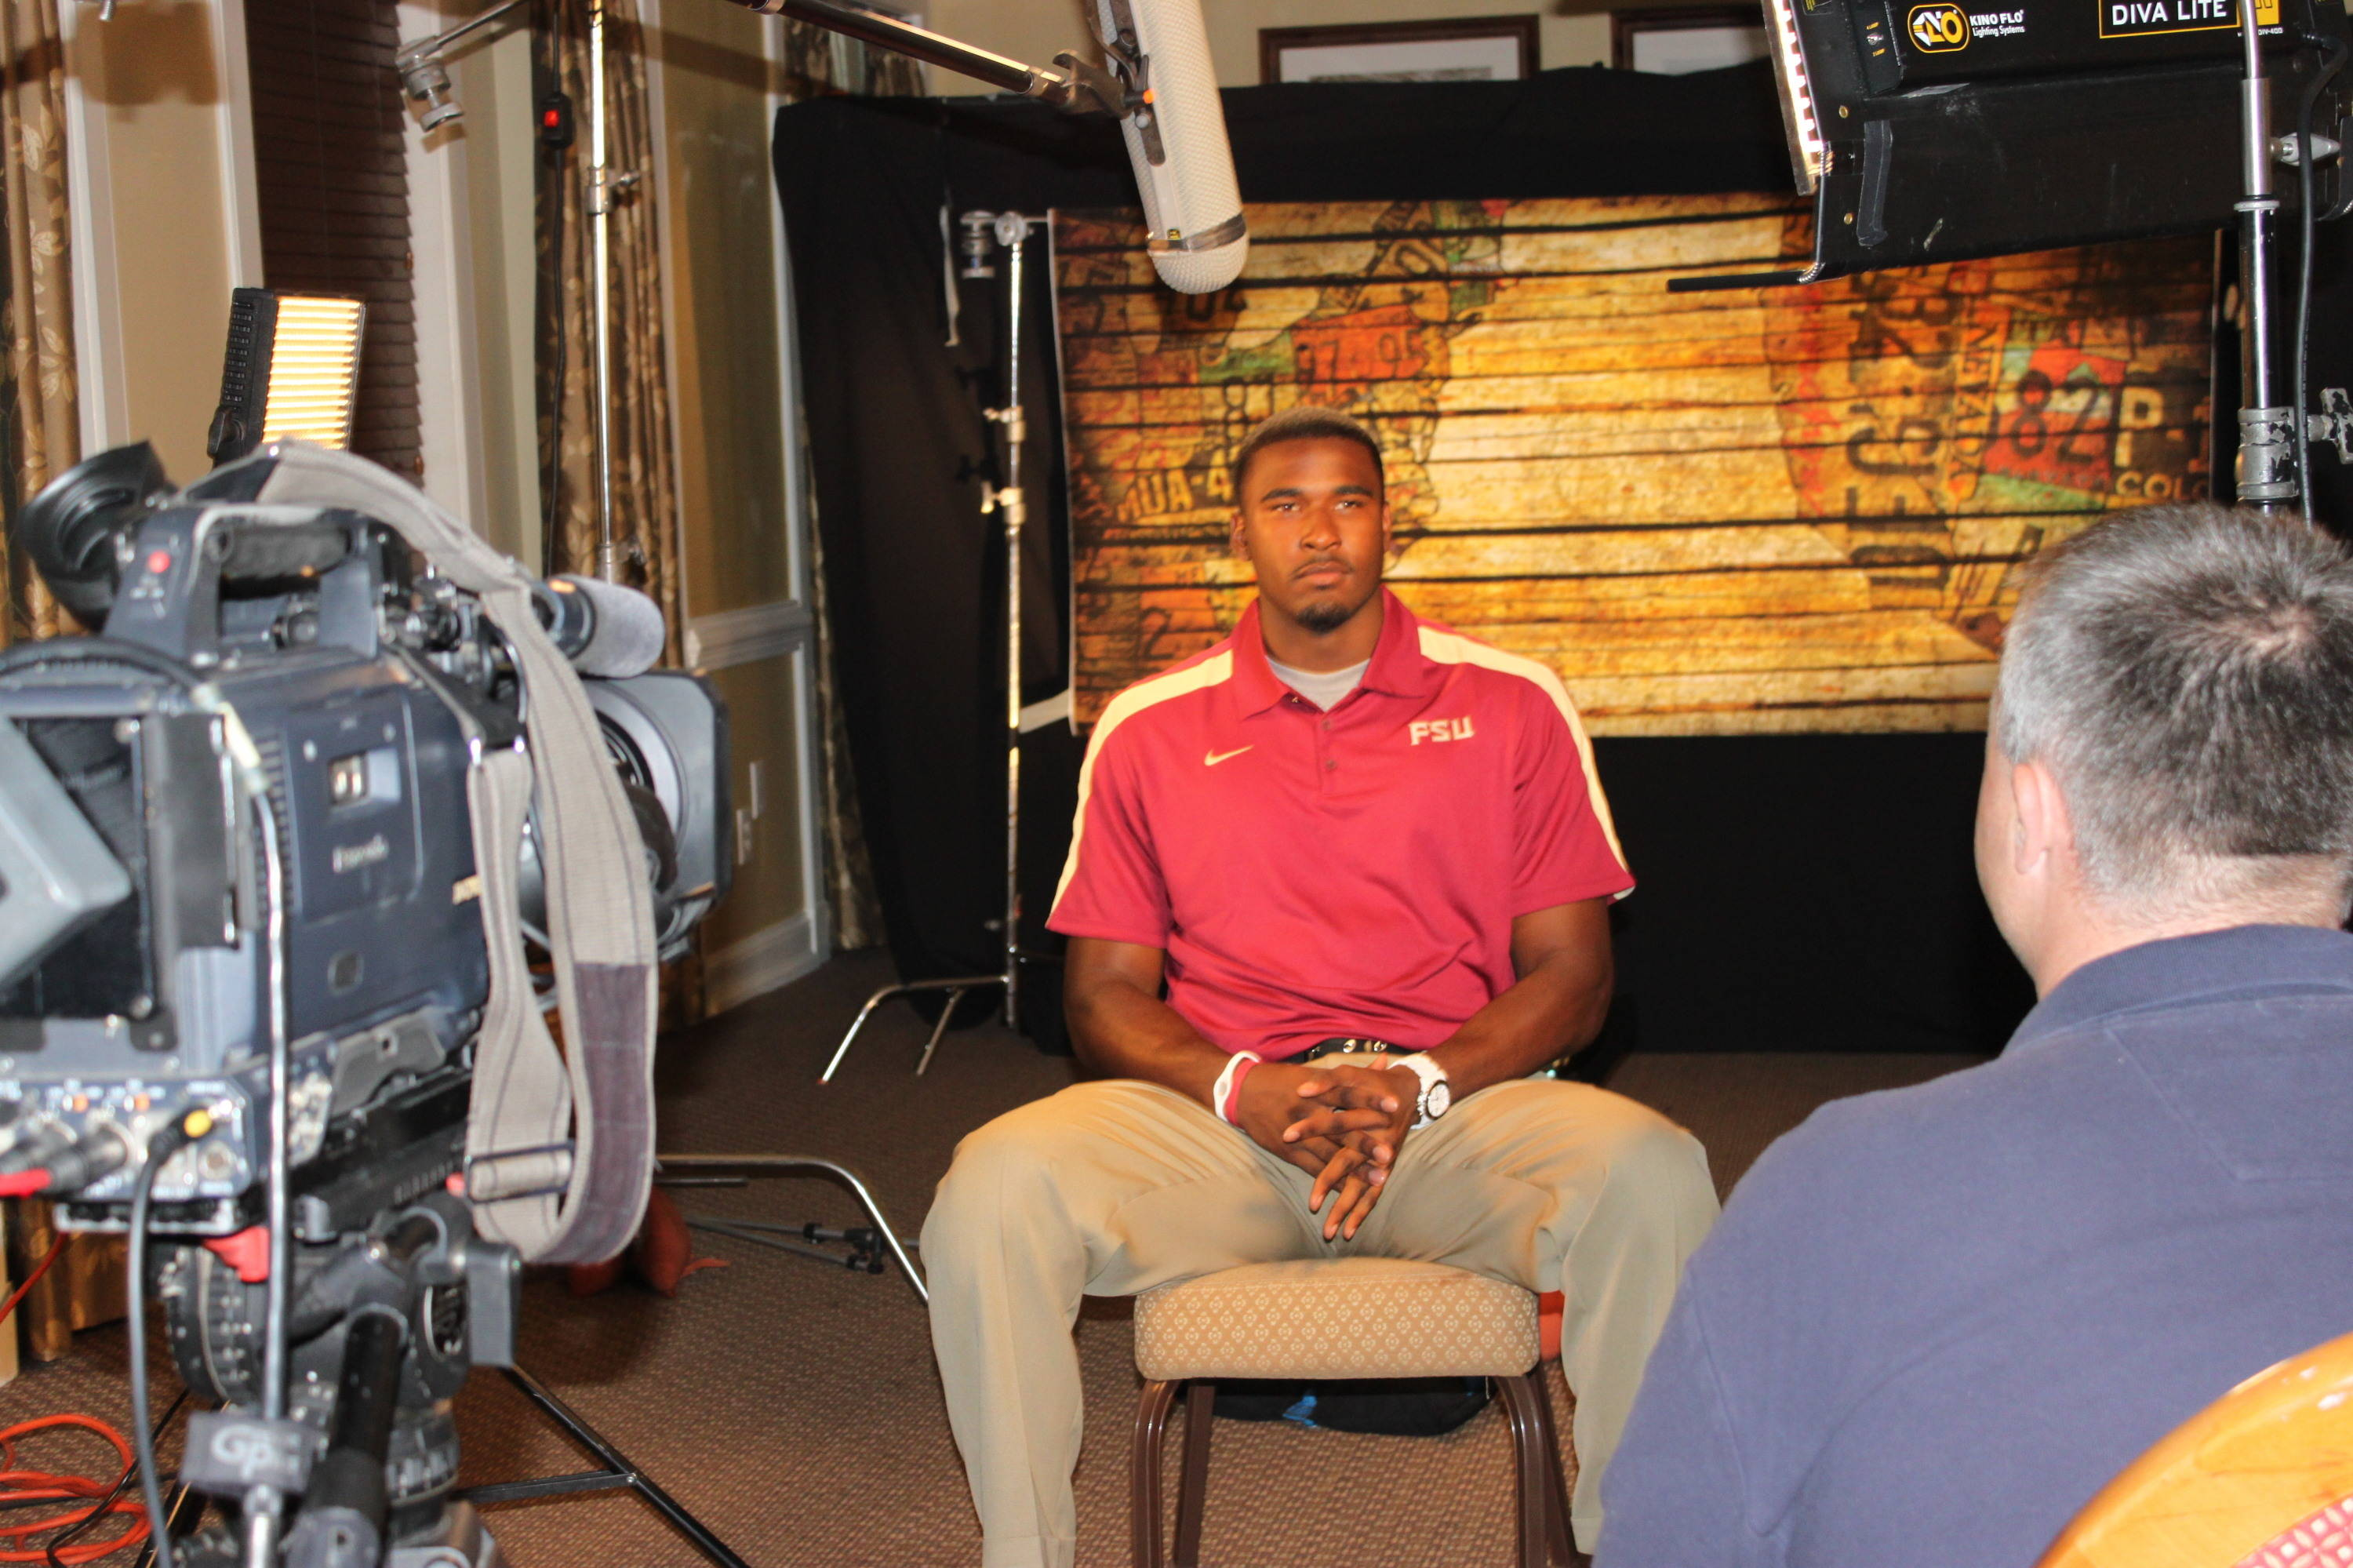 You'll see this backdrop again later this season, courtesy of ESPN's studio set-up at Pinehurst, where communication major EJ Manuel was right at home.